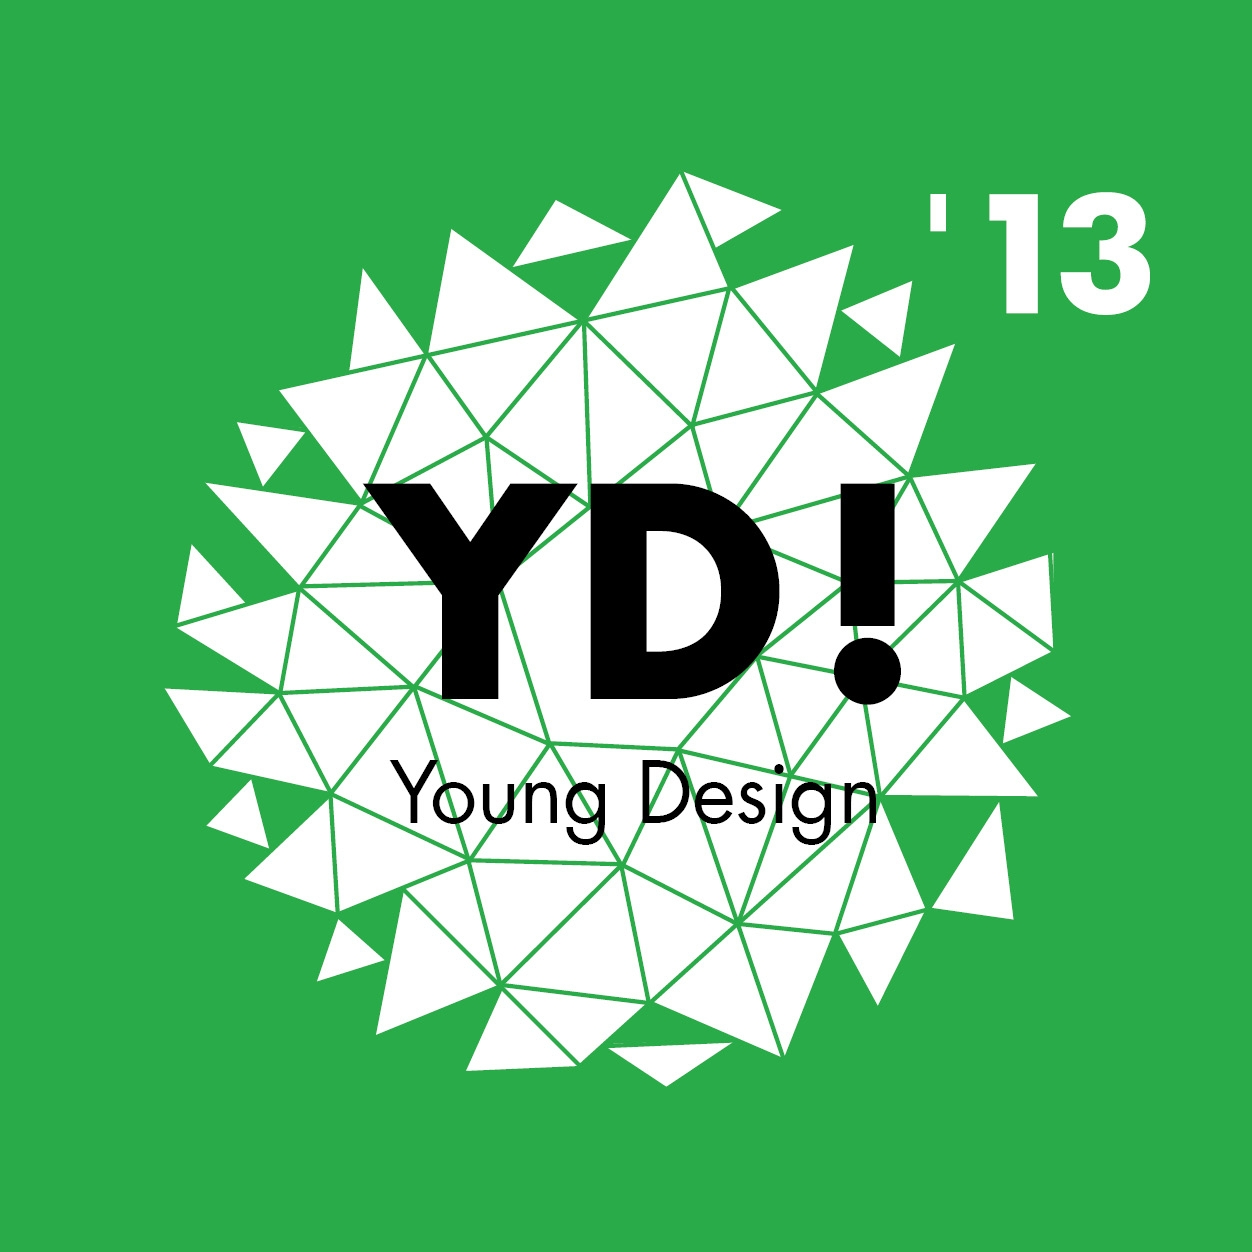 Young_Design_2013